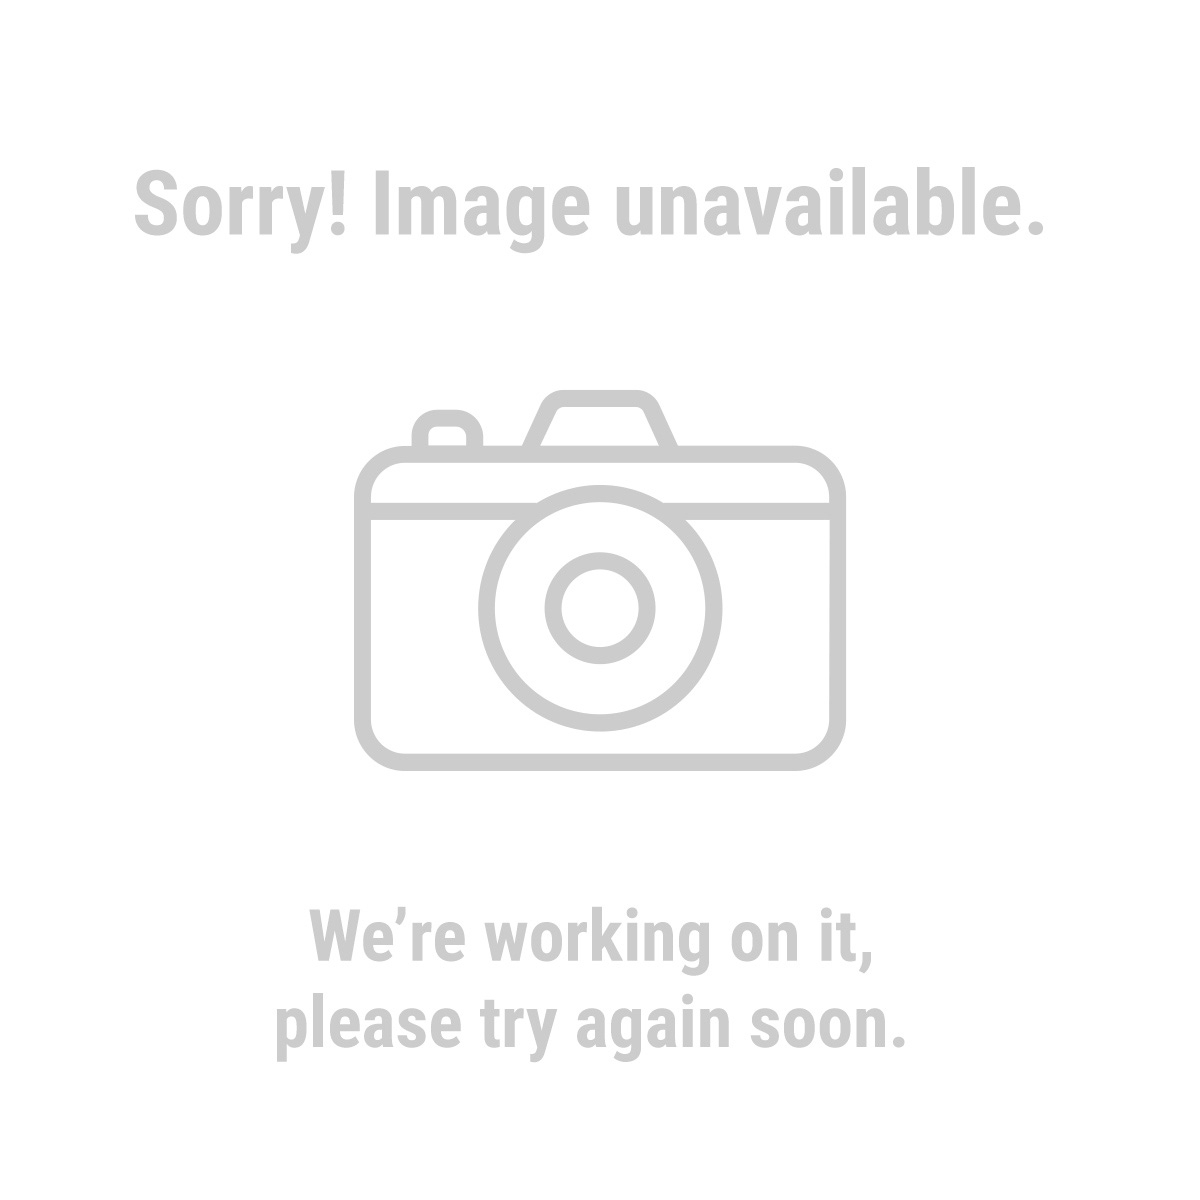 harbor freight miter saw. double-bevel sliding compound miter saw with laser guide system harbor freight g